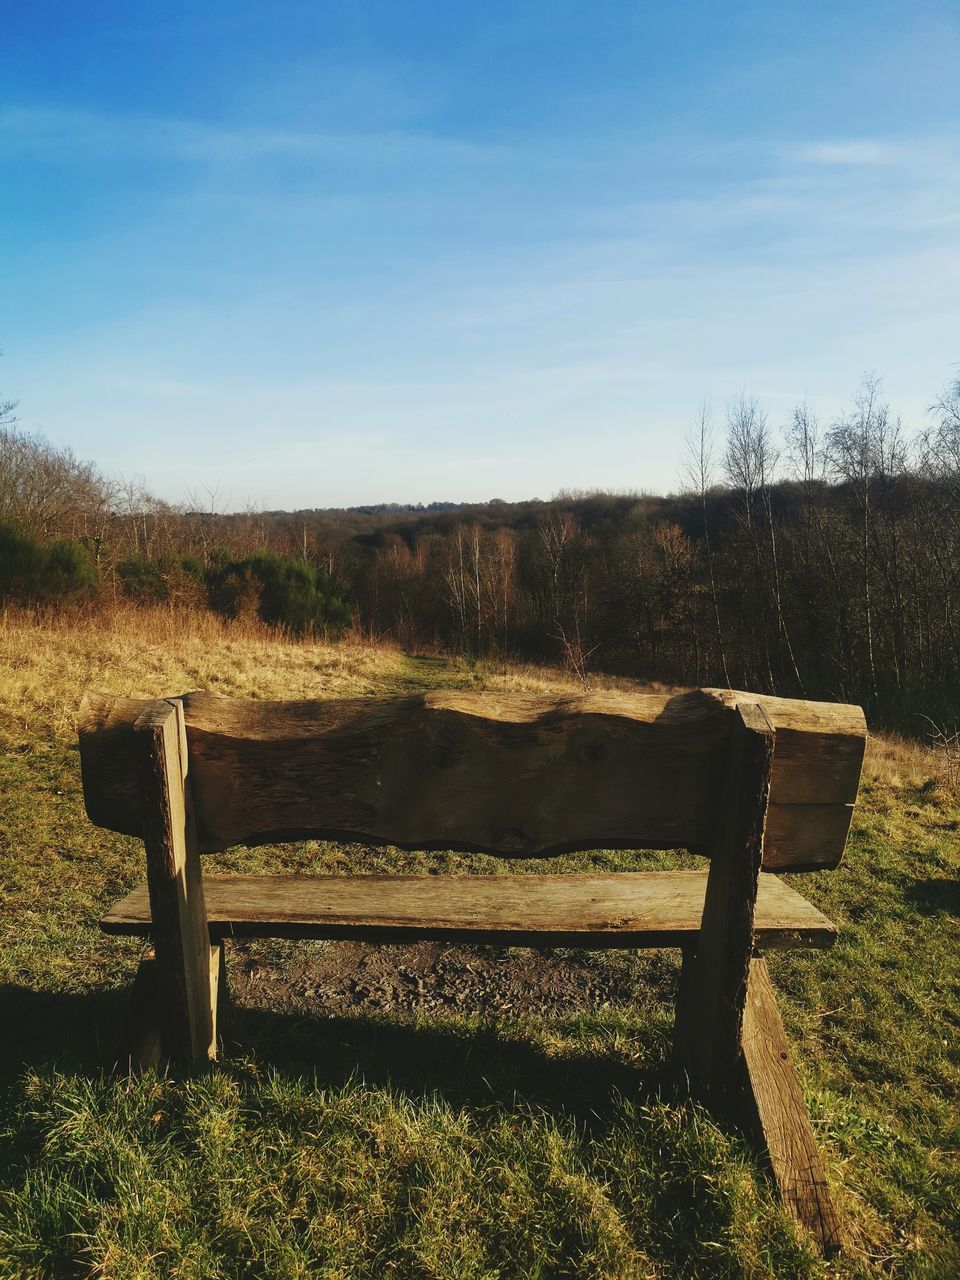 BENCH ON FIELD AGAINST SKY